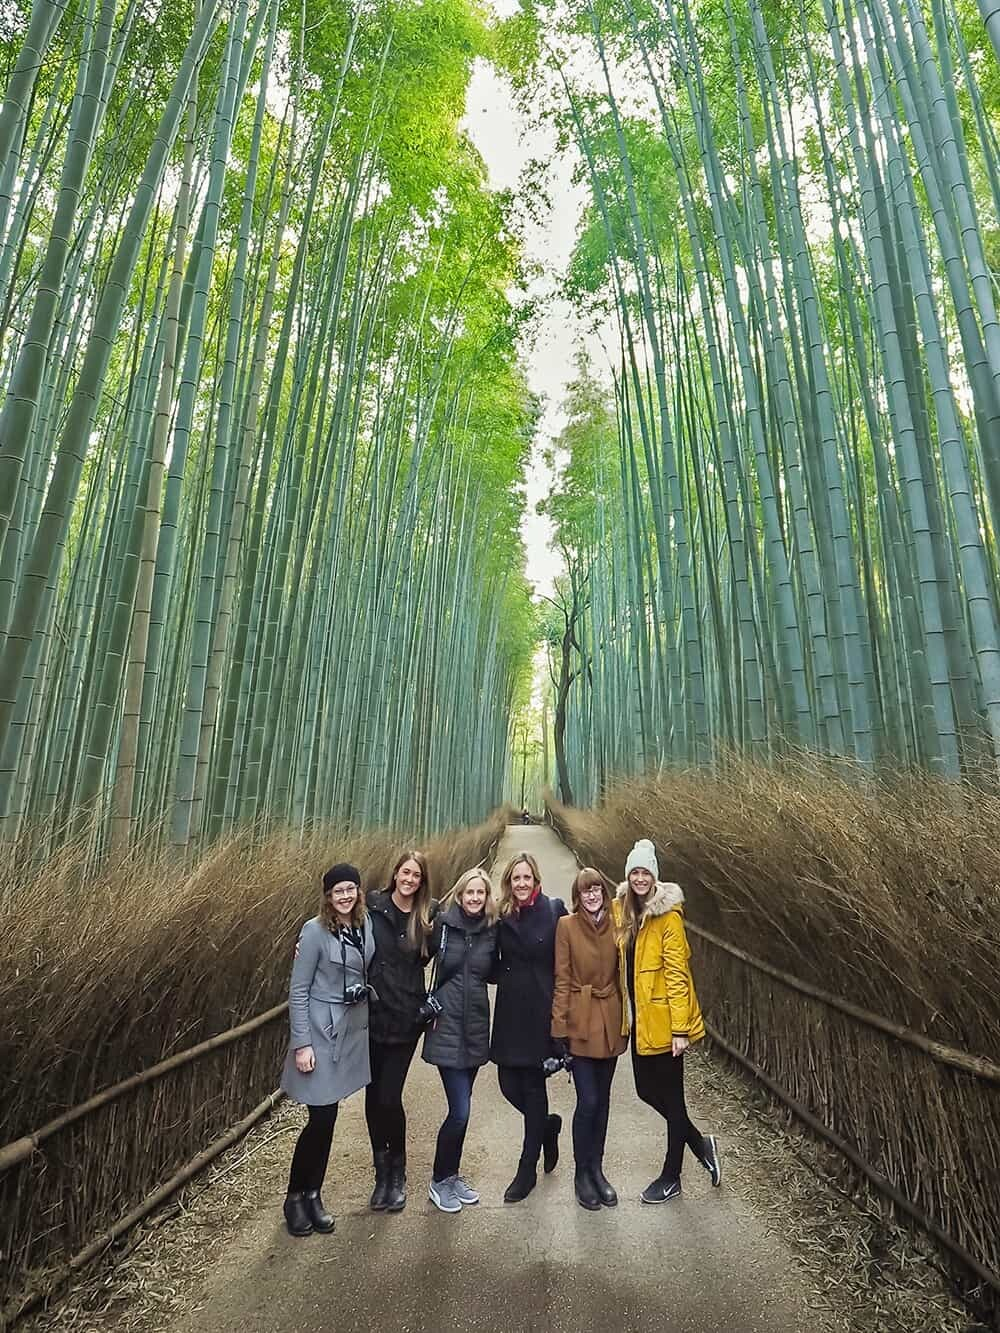 The Wandering Lens photography tour in Japan